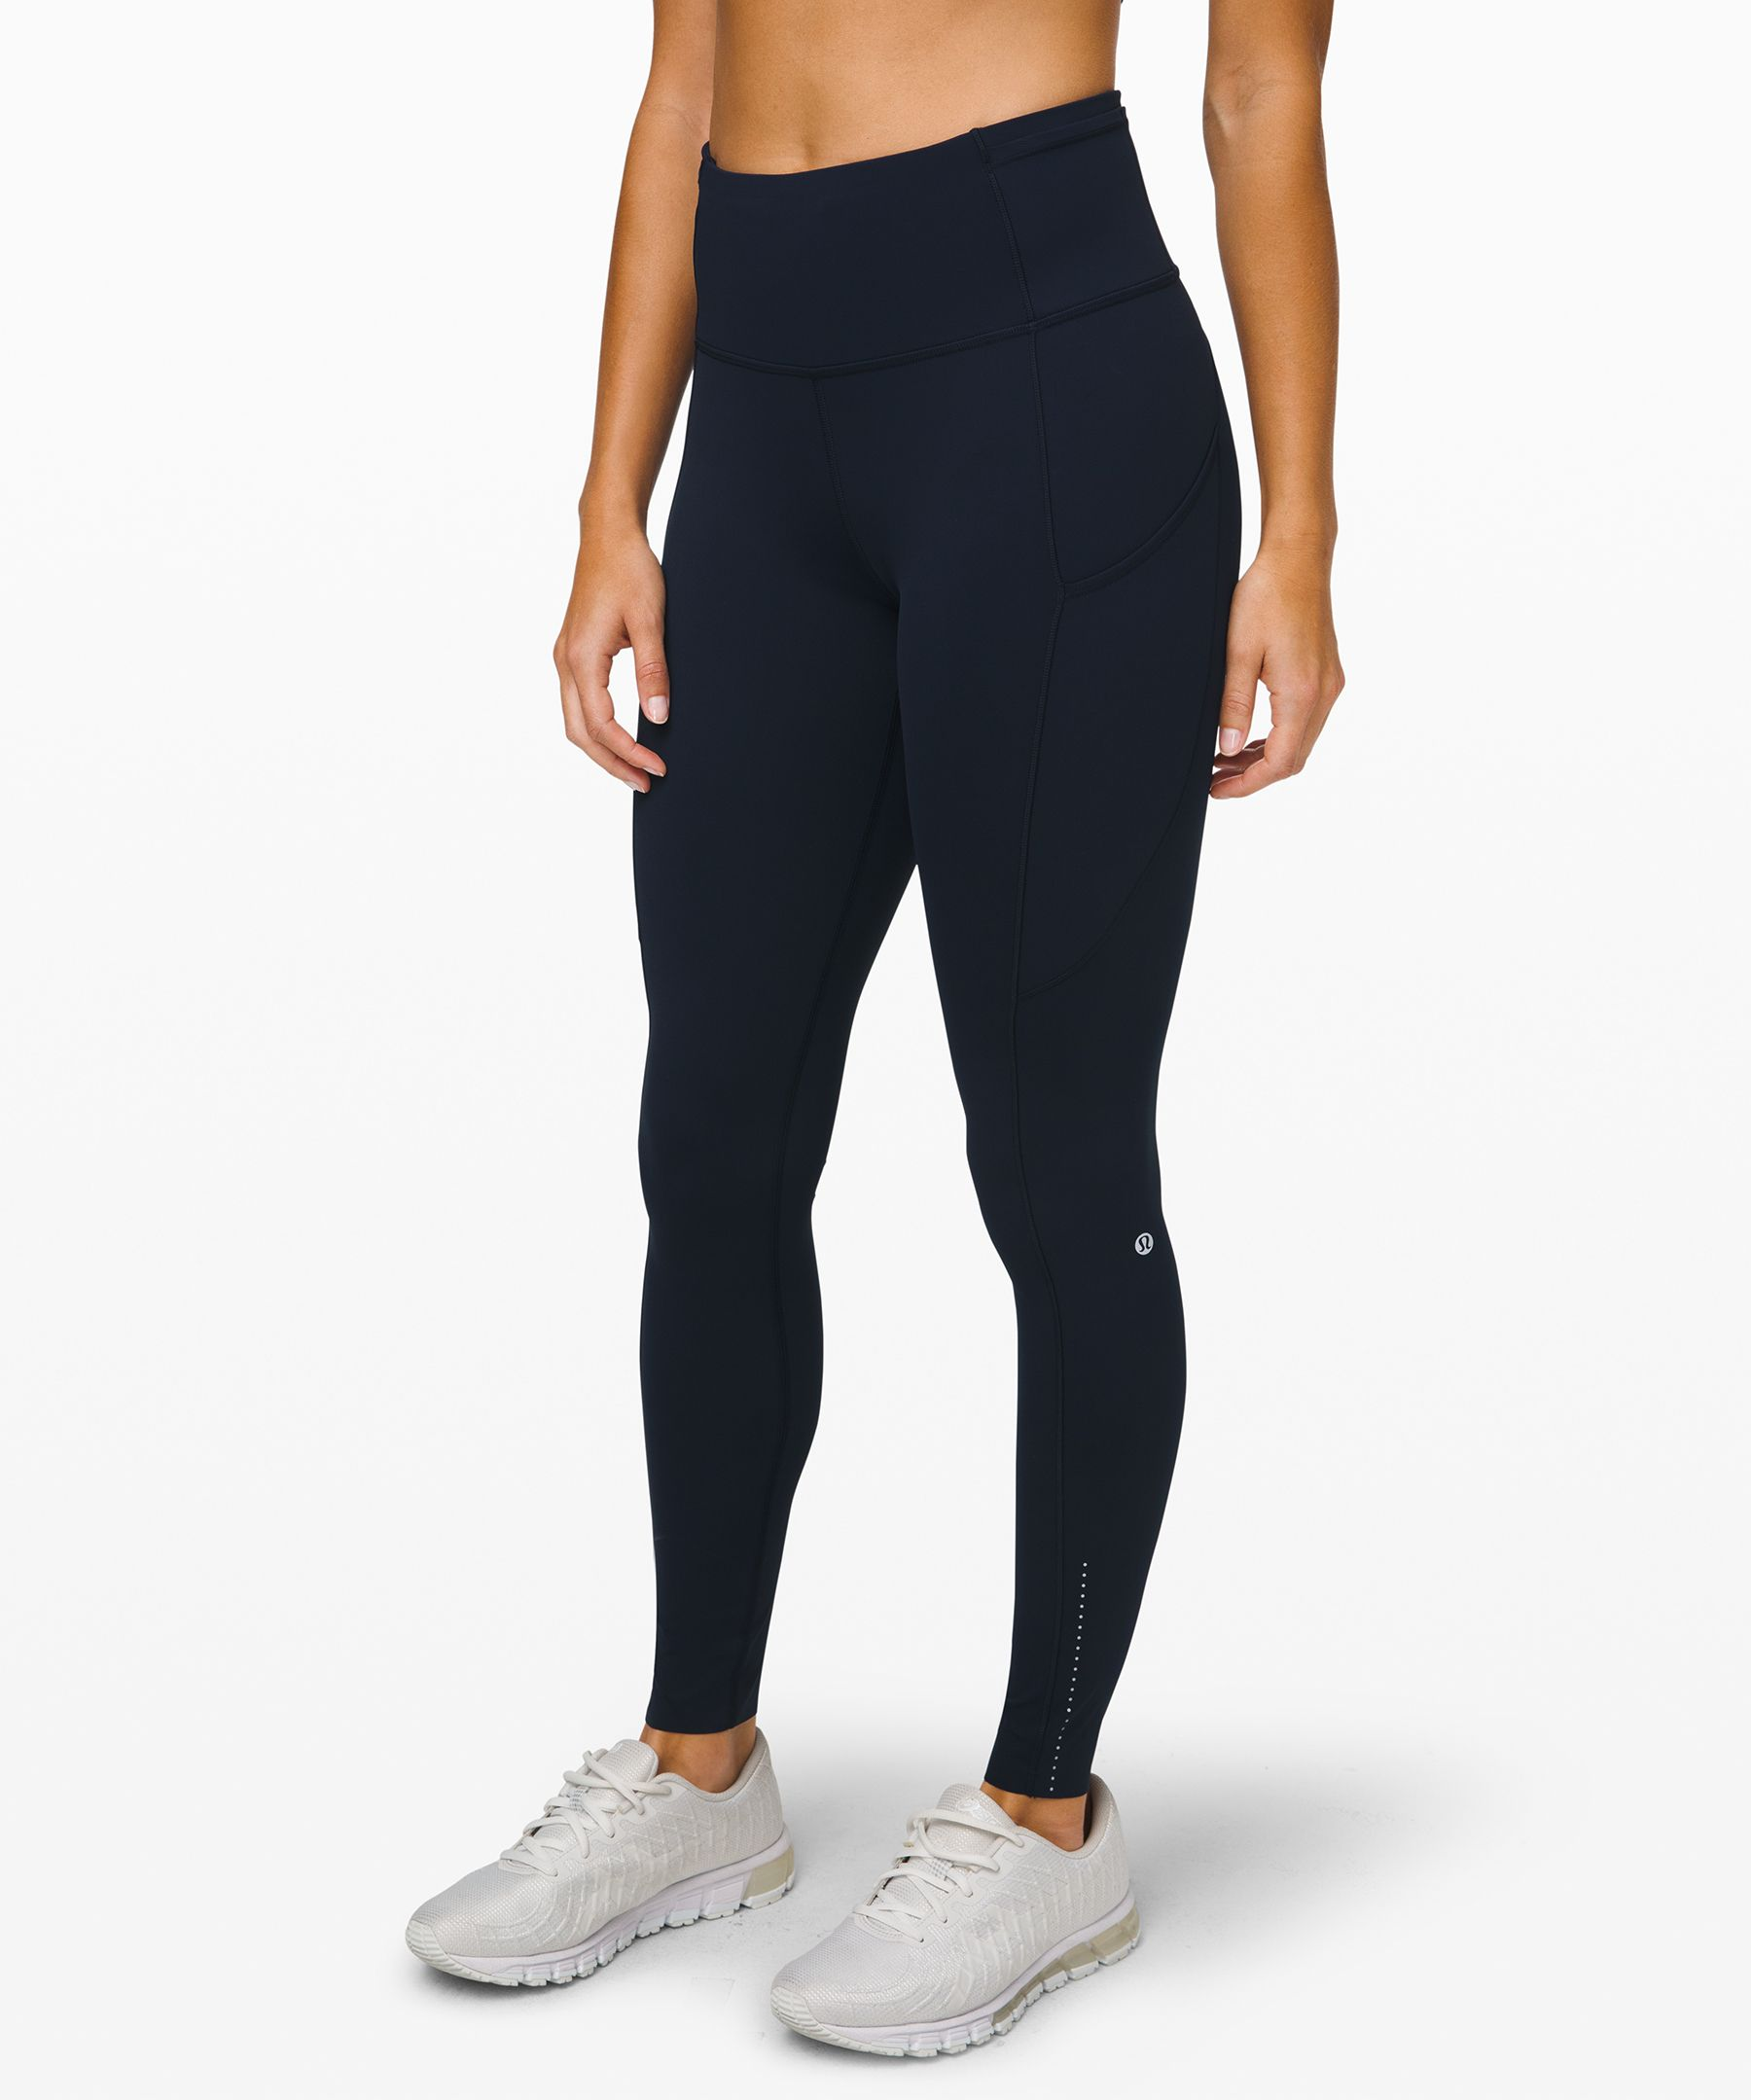 Fast and Free Tight 31 Reflective Online Only